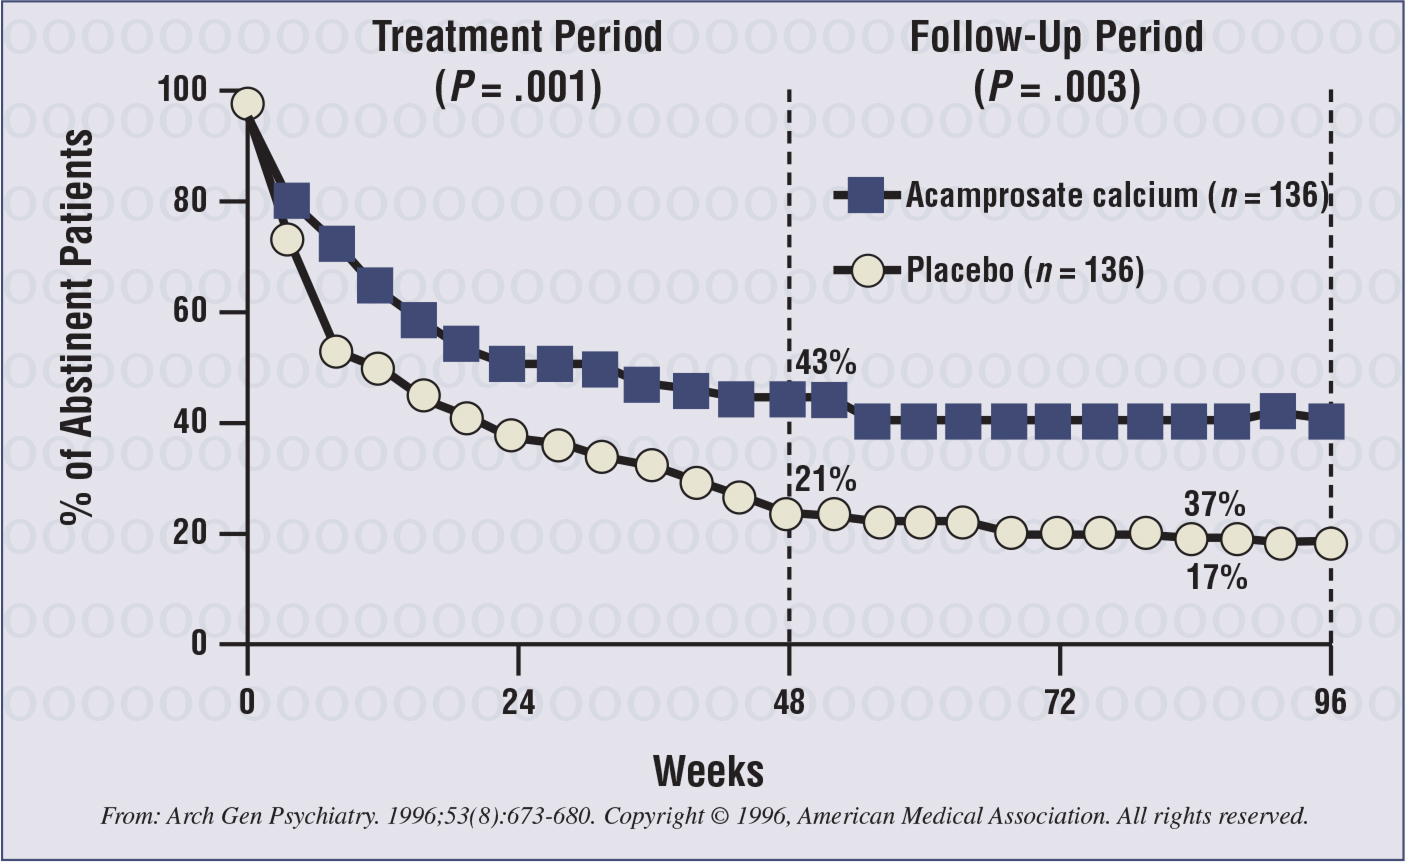 Results of a study of acamprosate for the treatment of alcohol dependence.31 A total of 272 patients were entered into the study during a 2-year period and evaluated using the Kaplan-Meier survival analysis survival function estimate. Continuous abstinence rates were assessed for the treatment and follow-up periods.